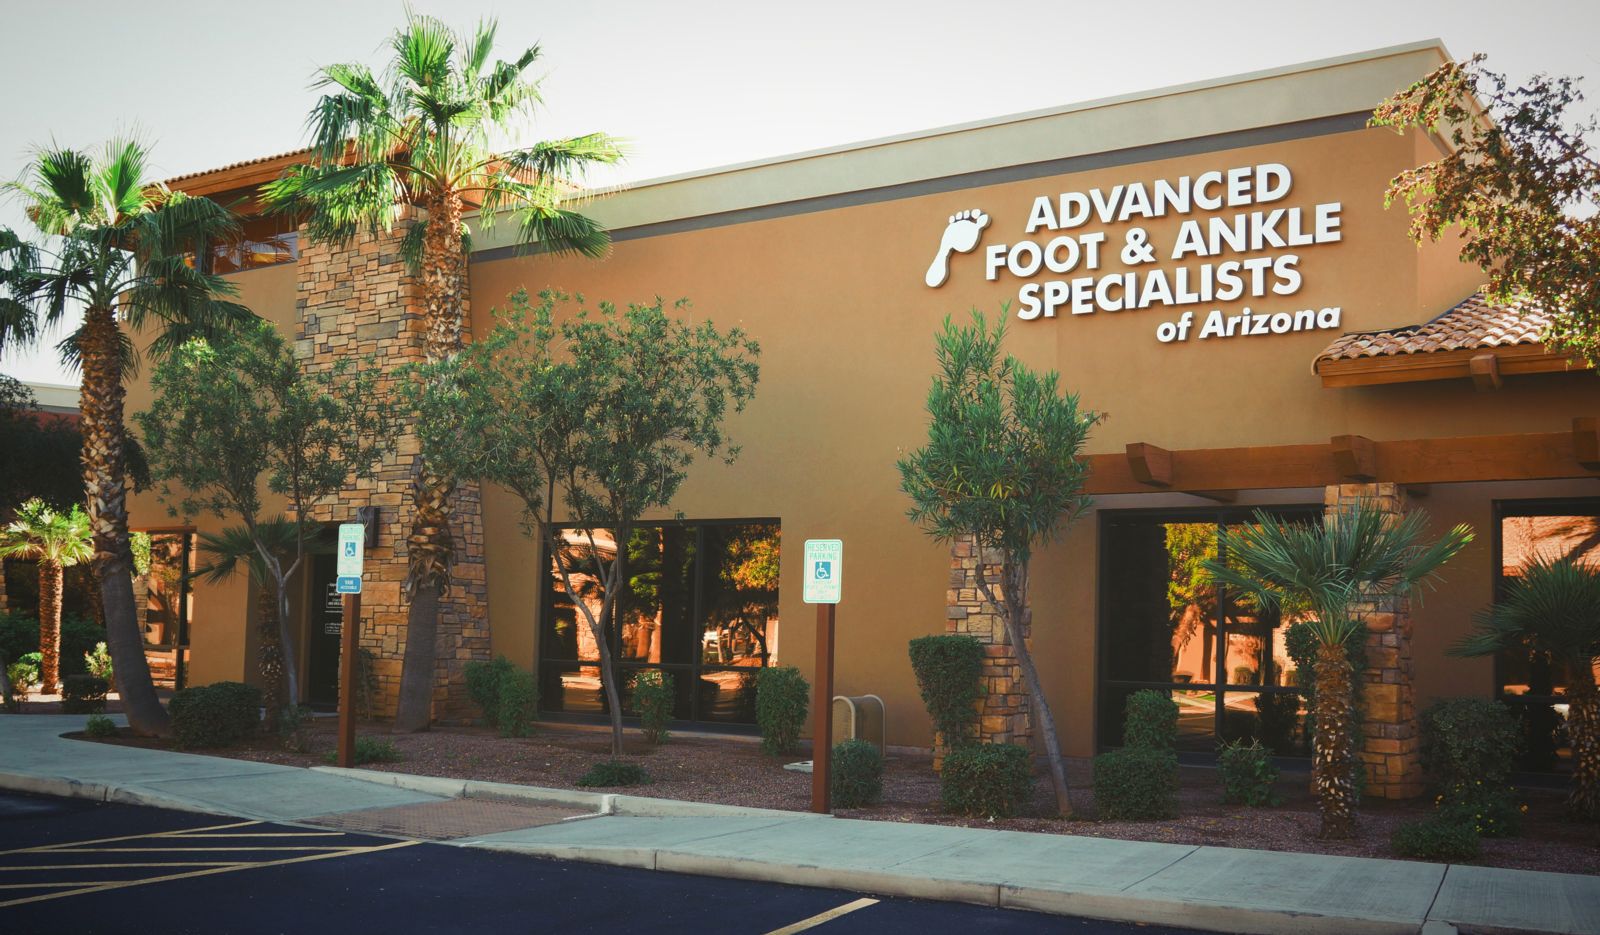 Our Gilbert location